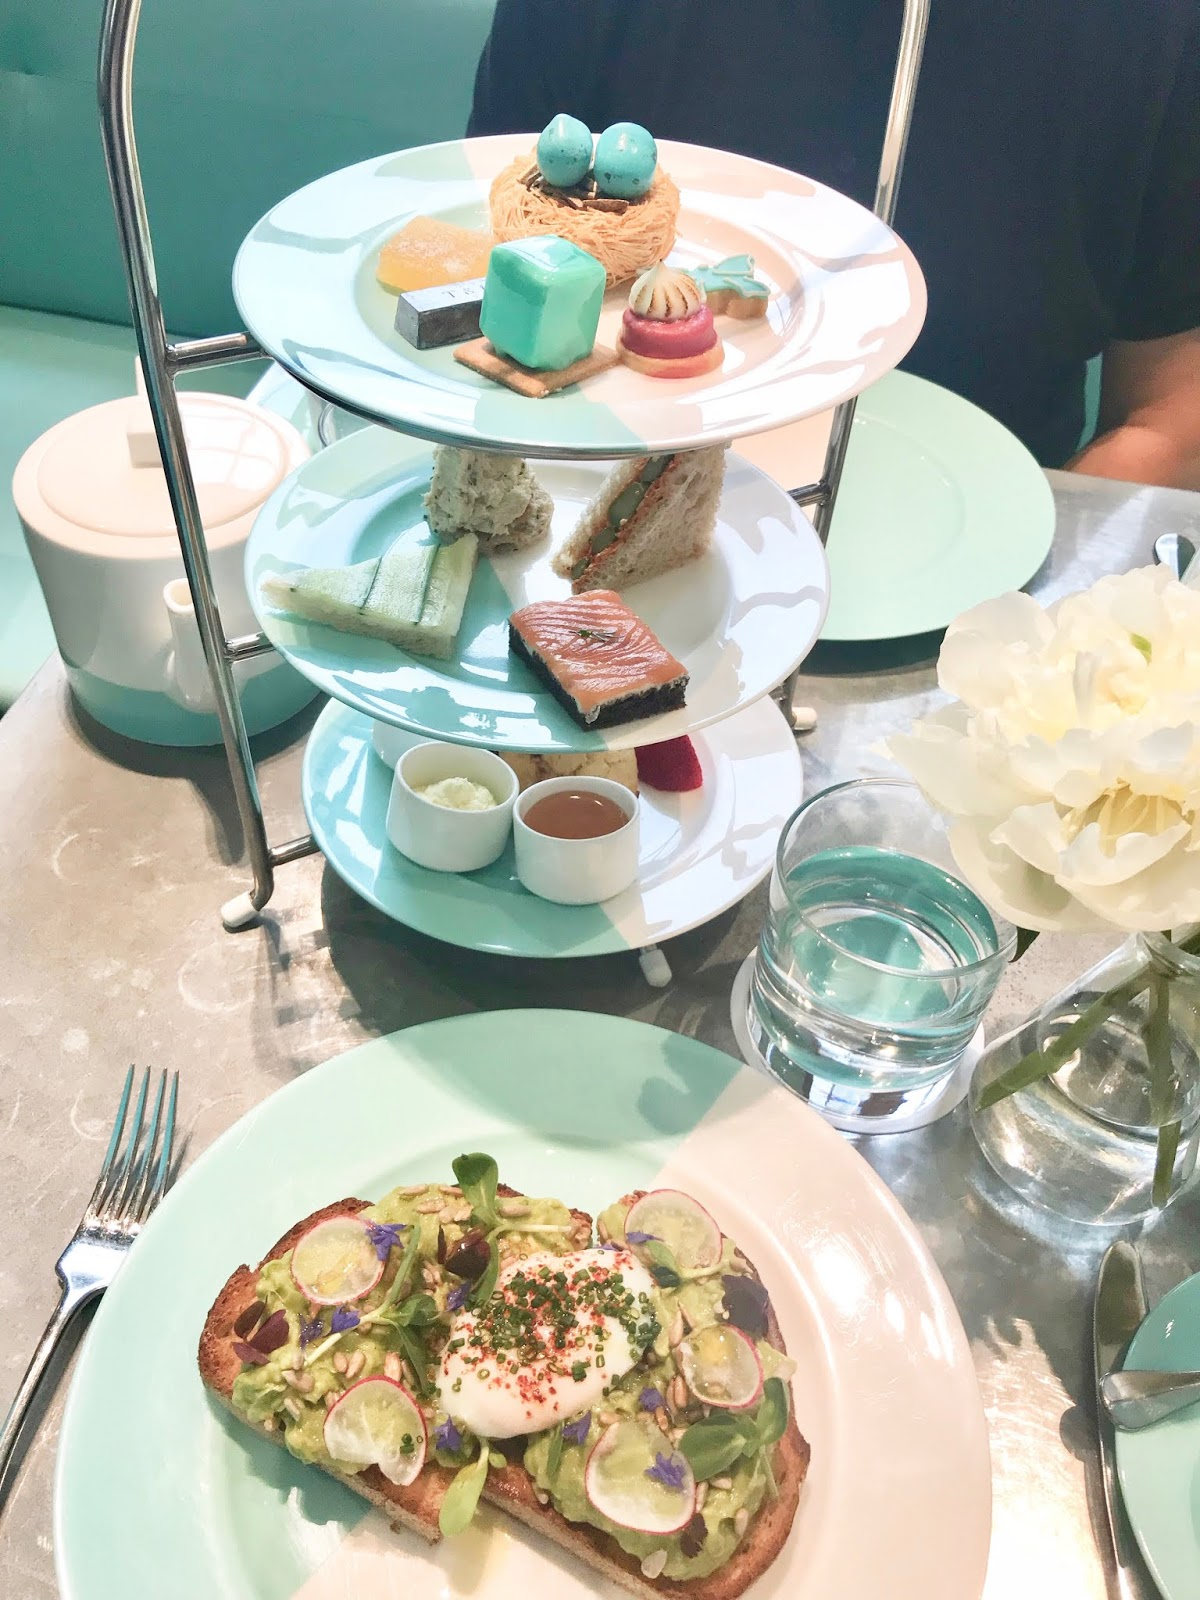 Afternoon tea at Tiffany's